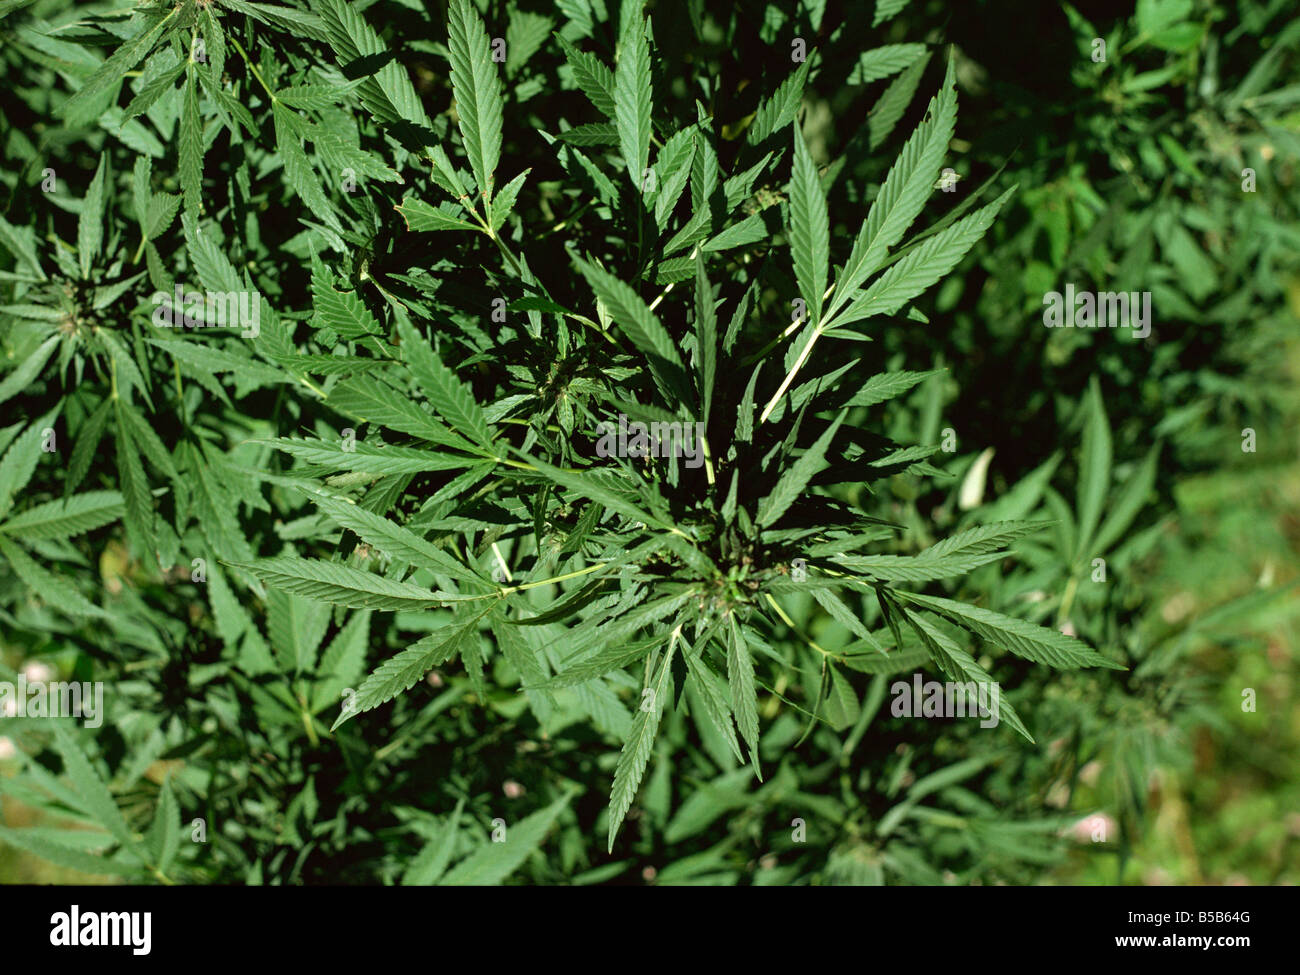 Cannabis plant Hunza Valley Pakistan Asia - Stock Image